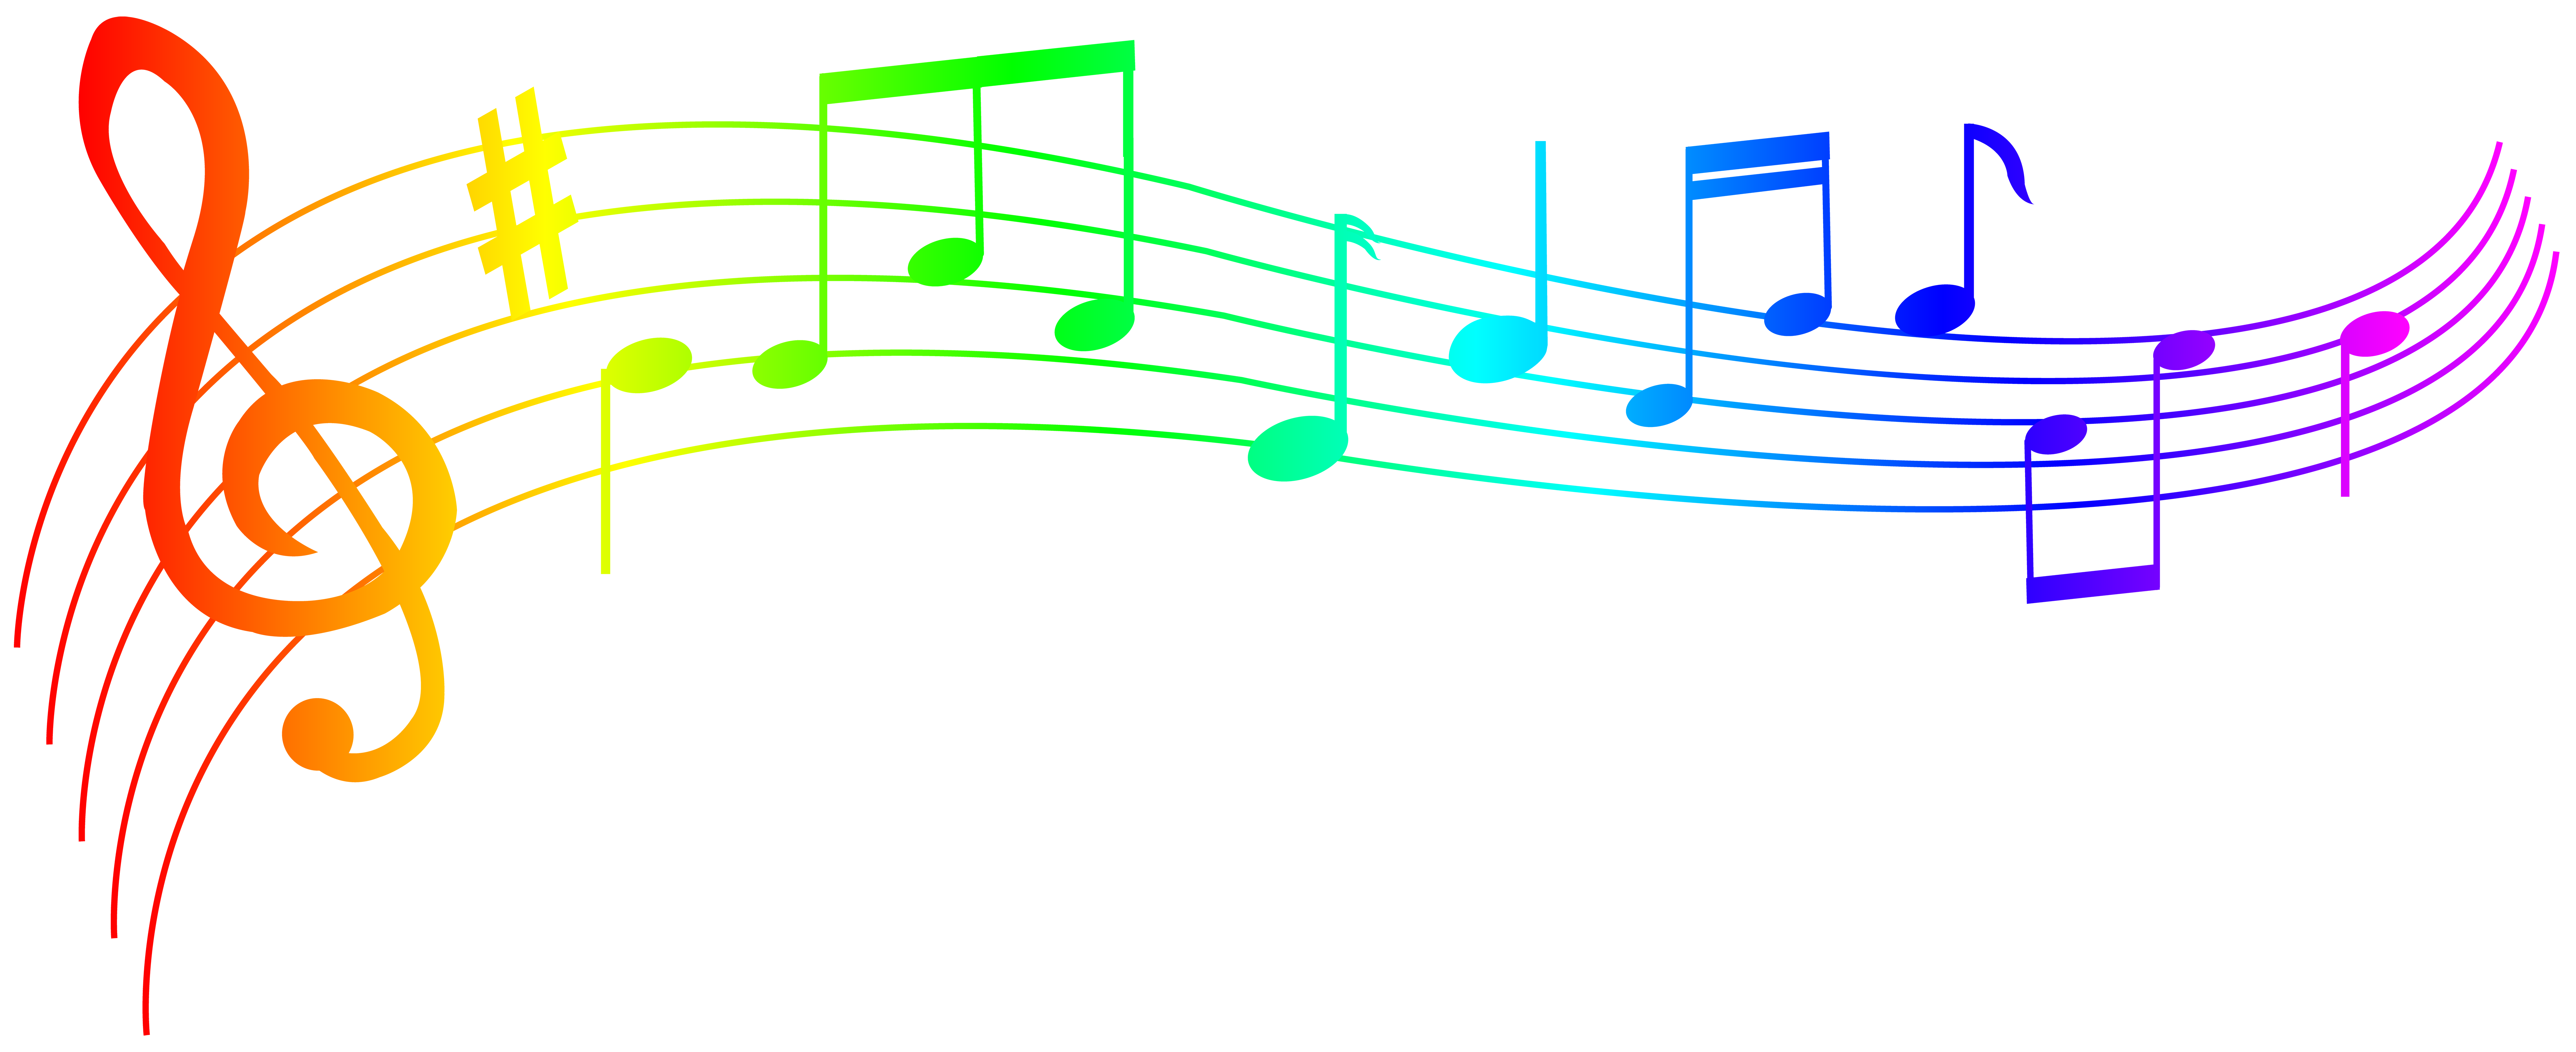 Colorful musical notes png. Clip art image gallery